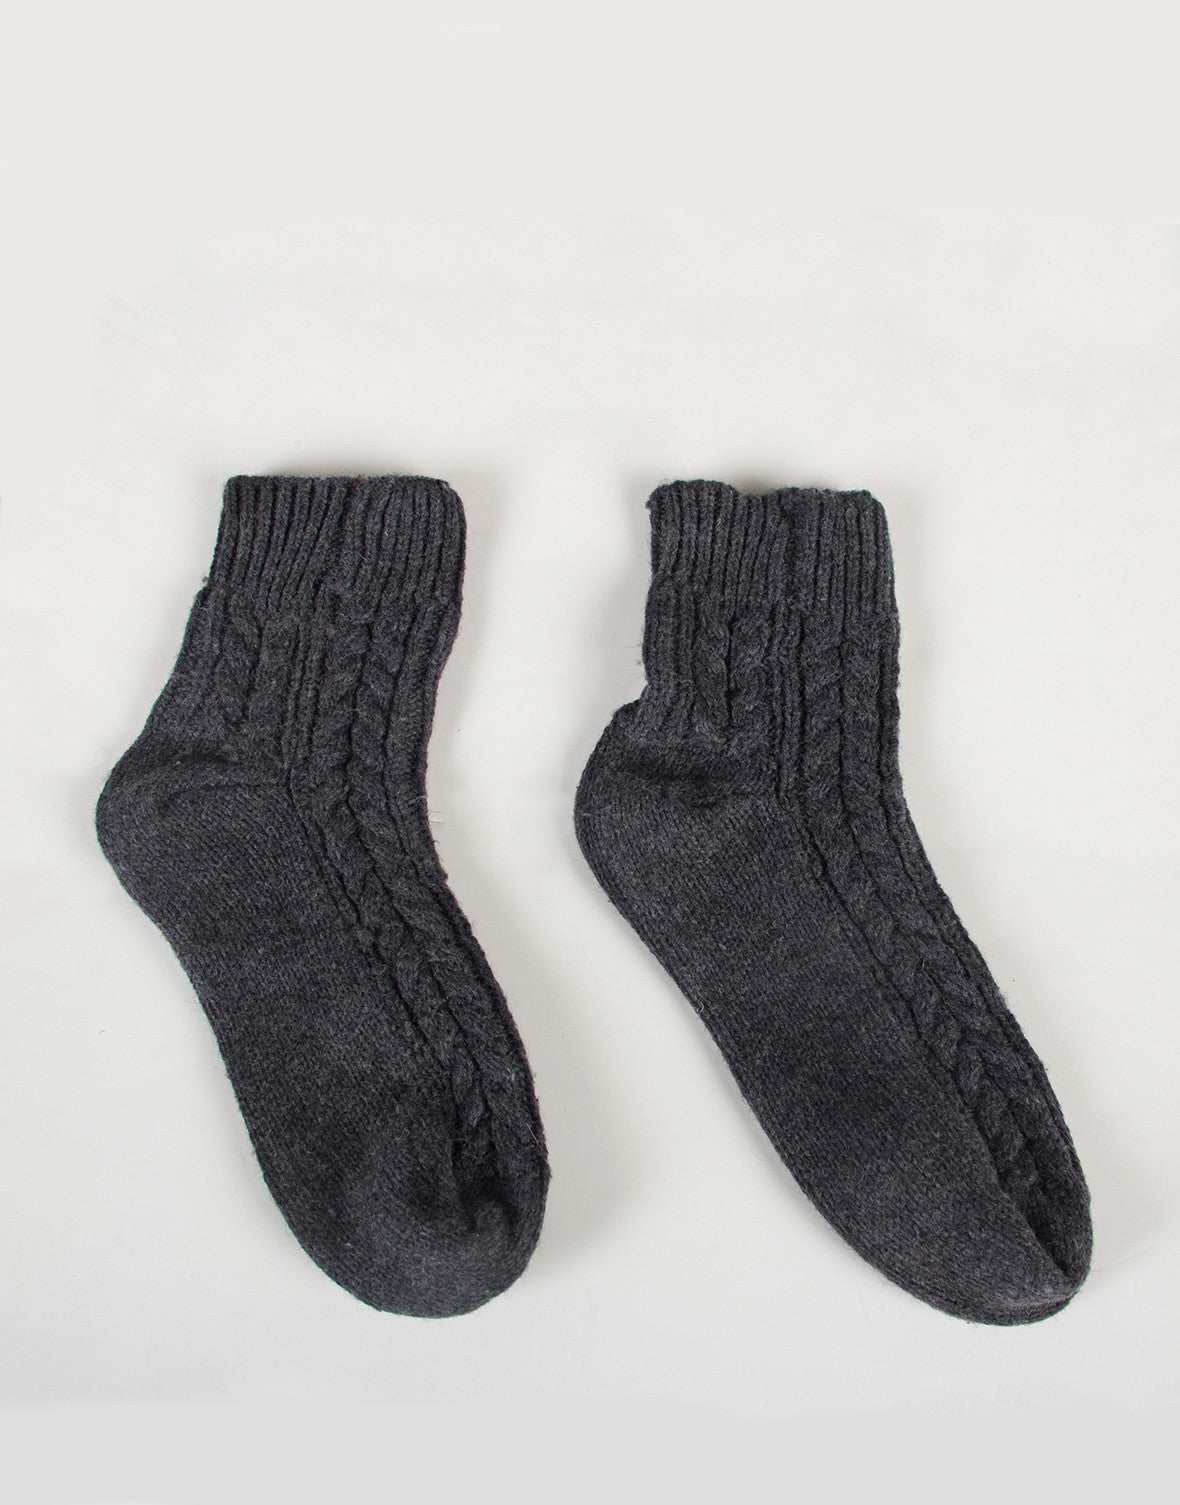 Knit Ankle Socks (+ colors)